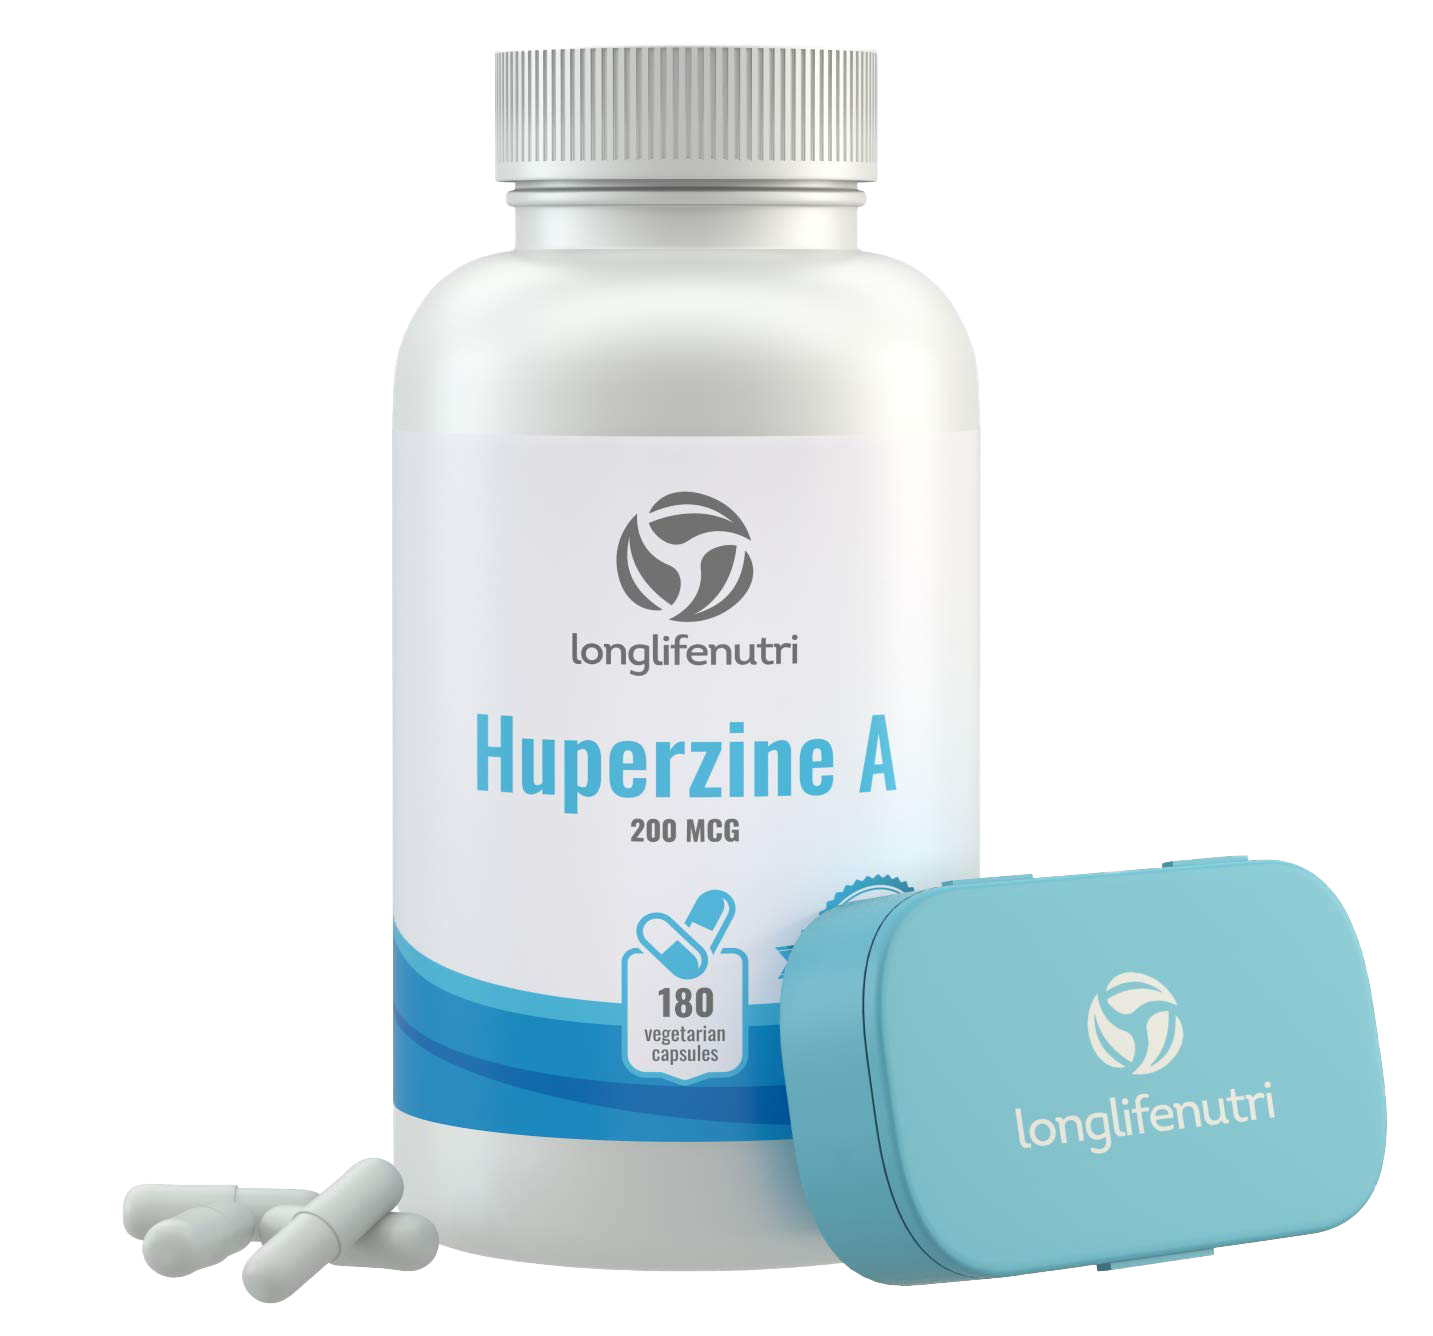 Huperzine A 200 mcg supplement by LongLifeNutri